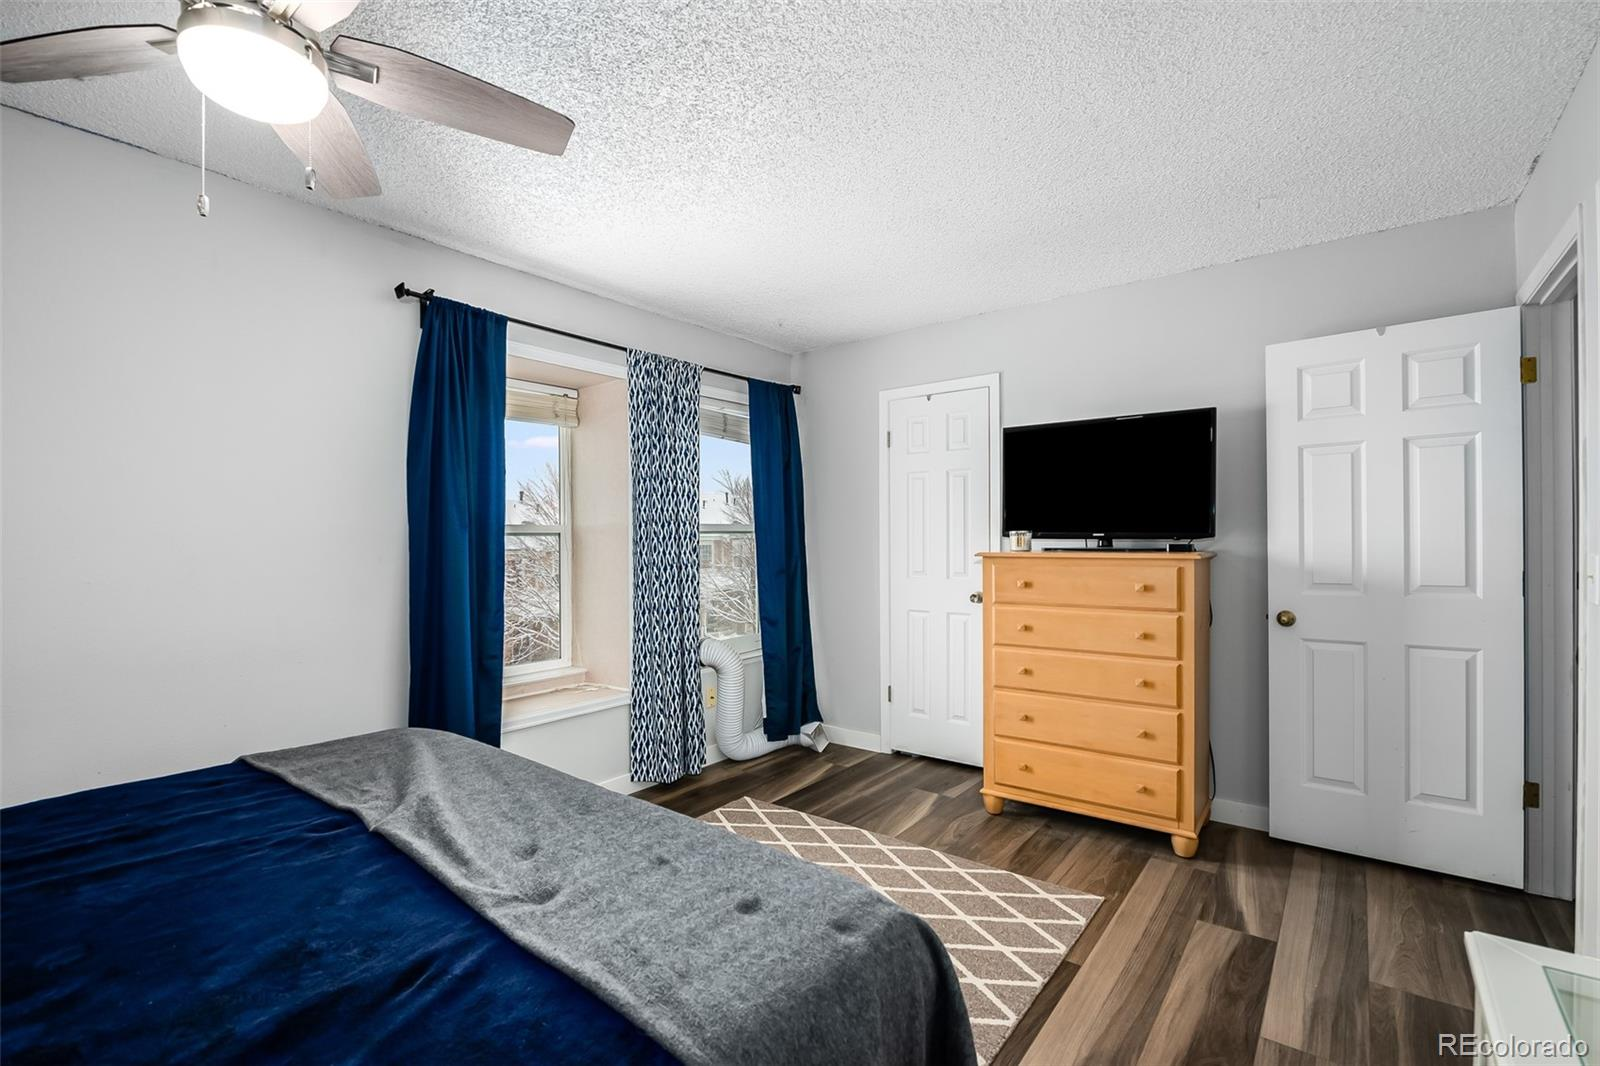 MLS# 2133621 - 16 - 2220 E 103rd Place, Thornton, CO 80229